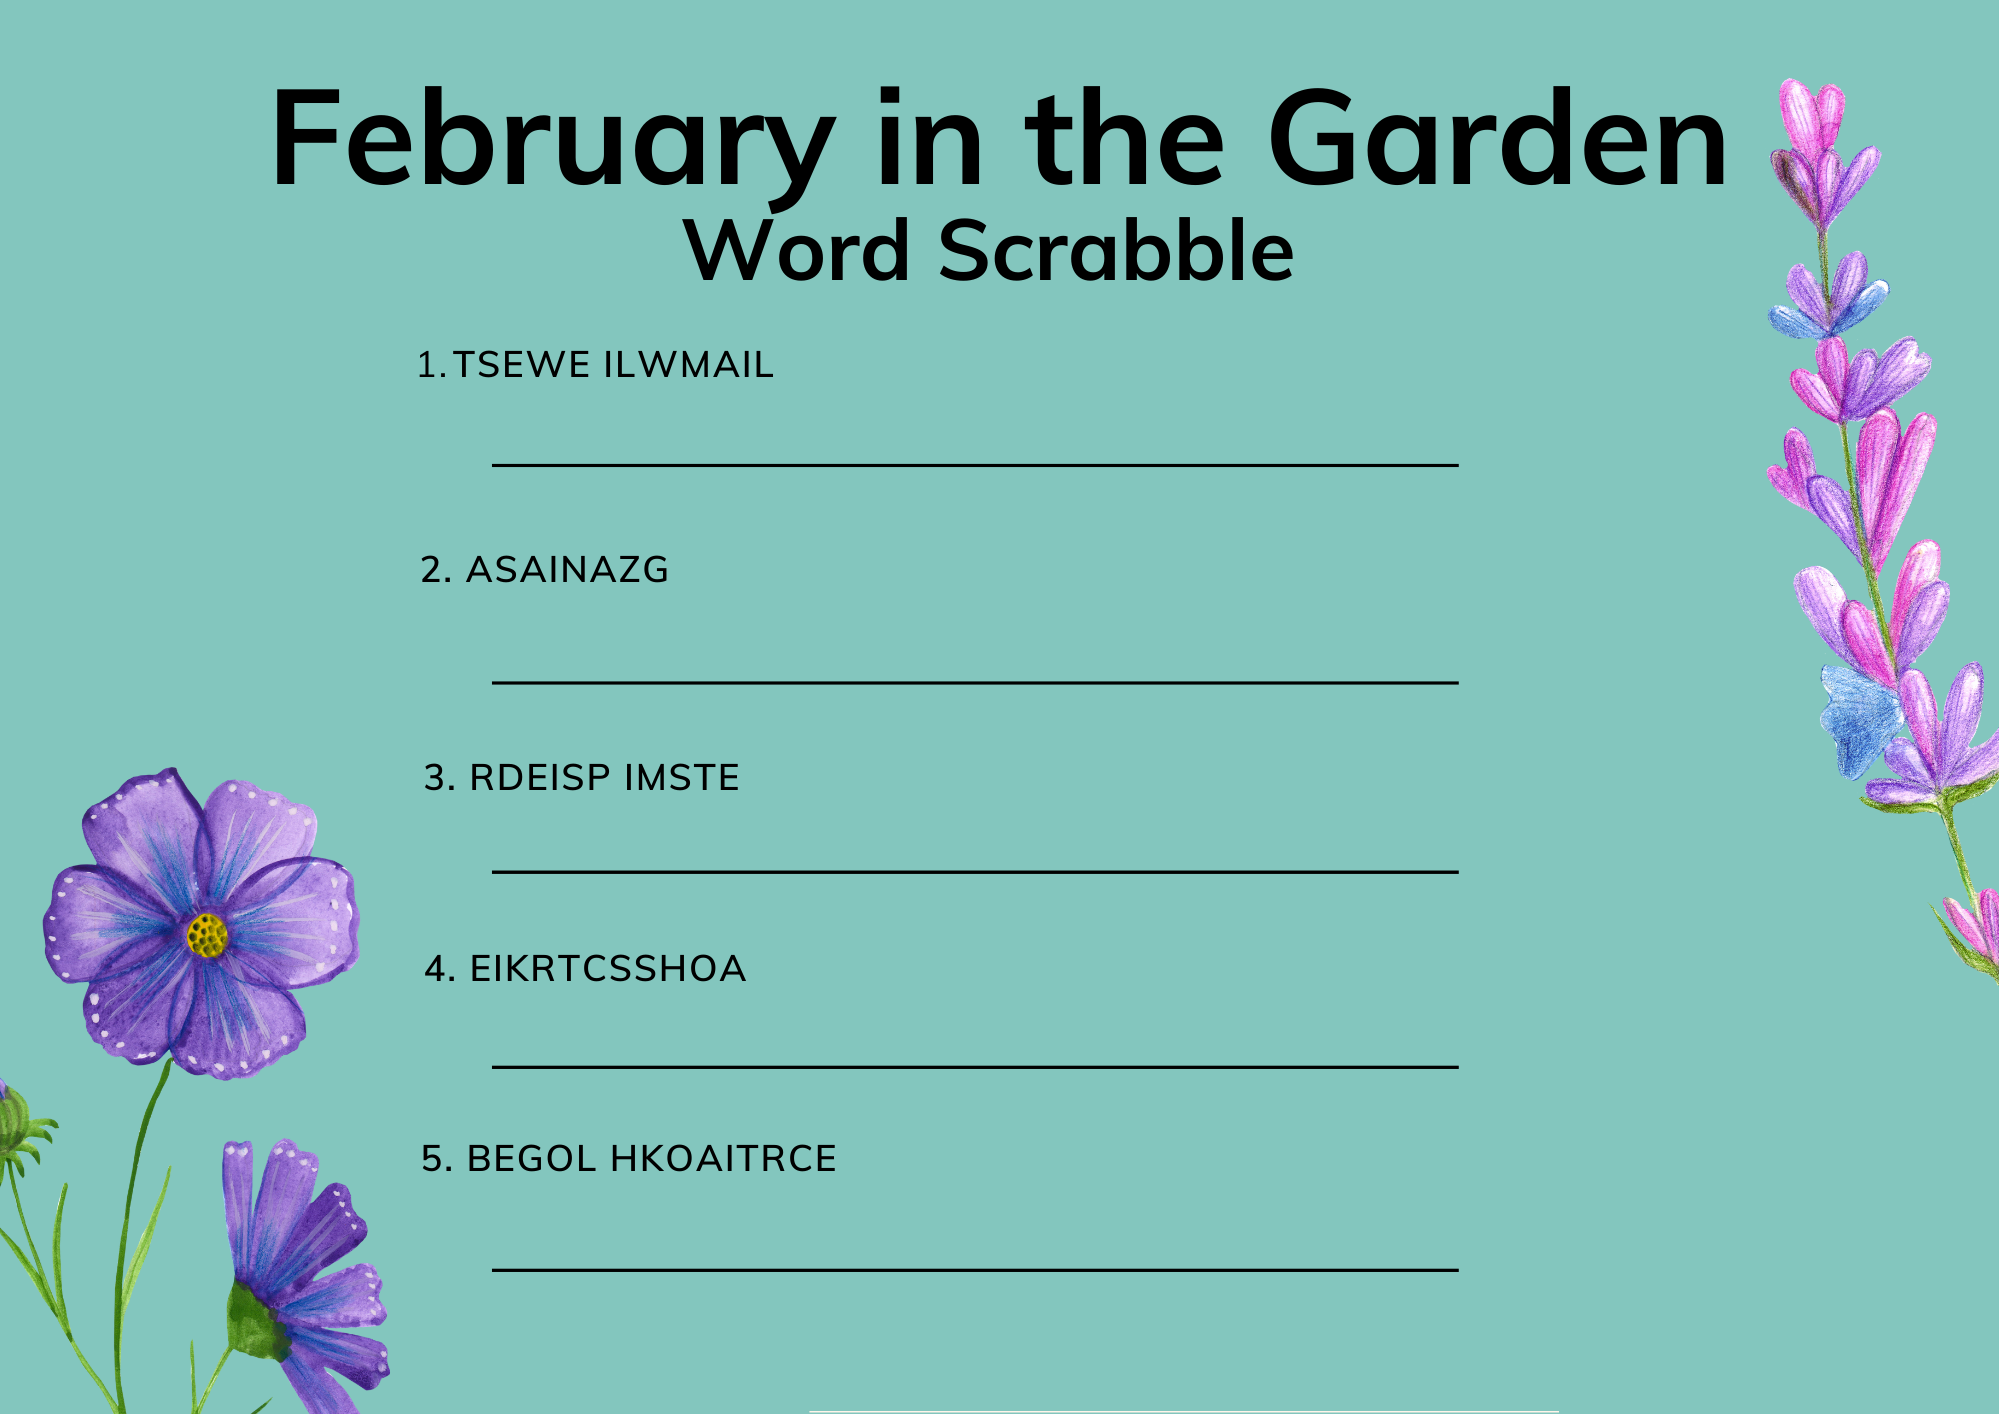 February in the garden word scrabble